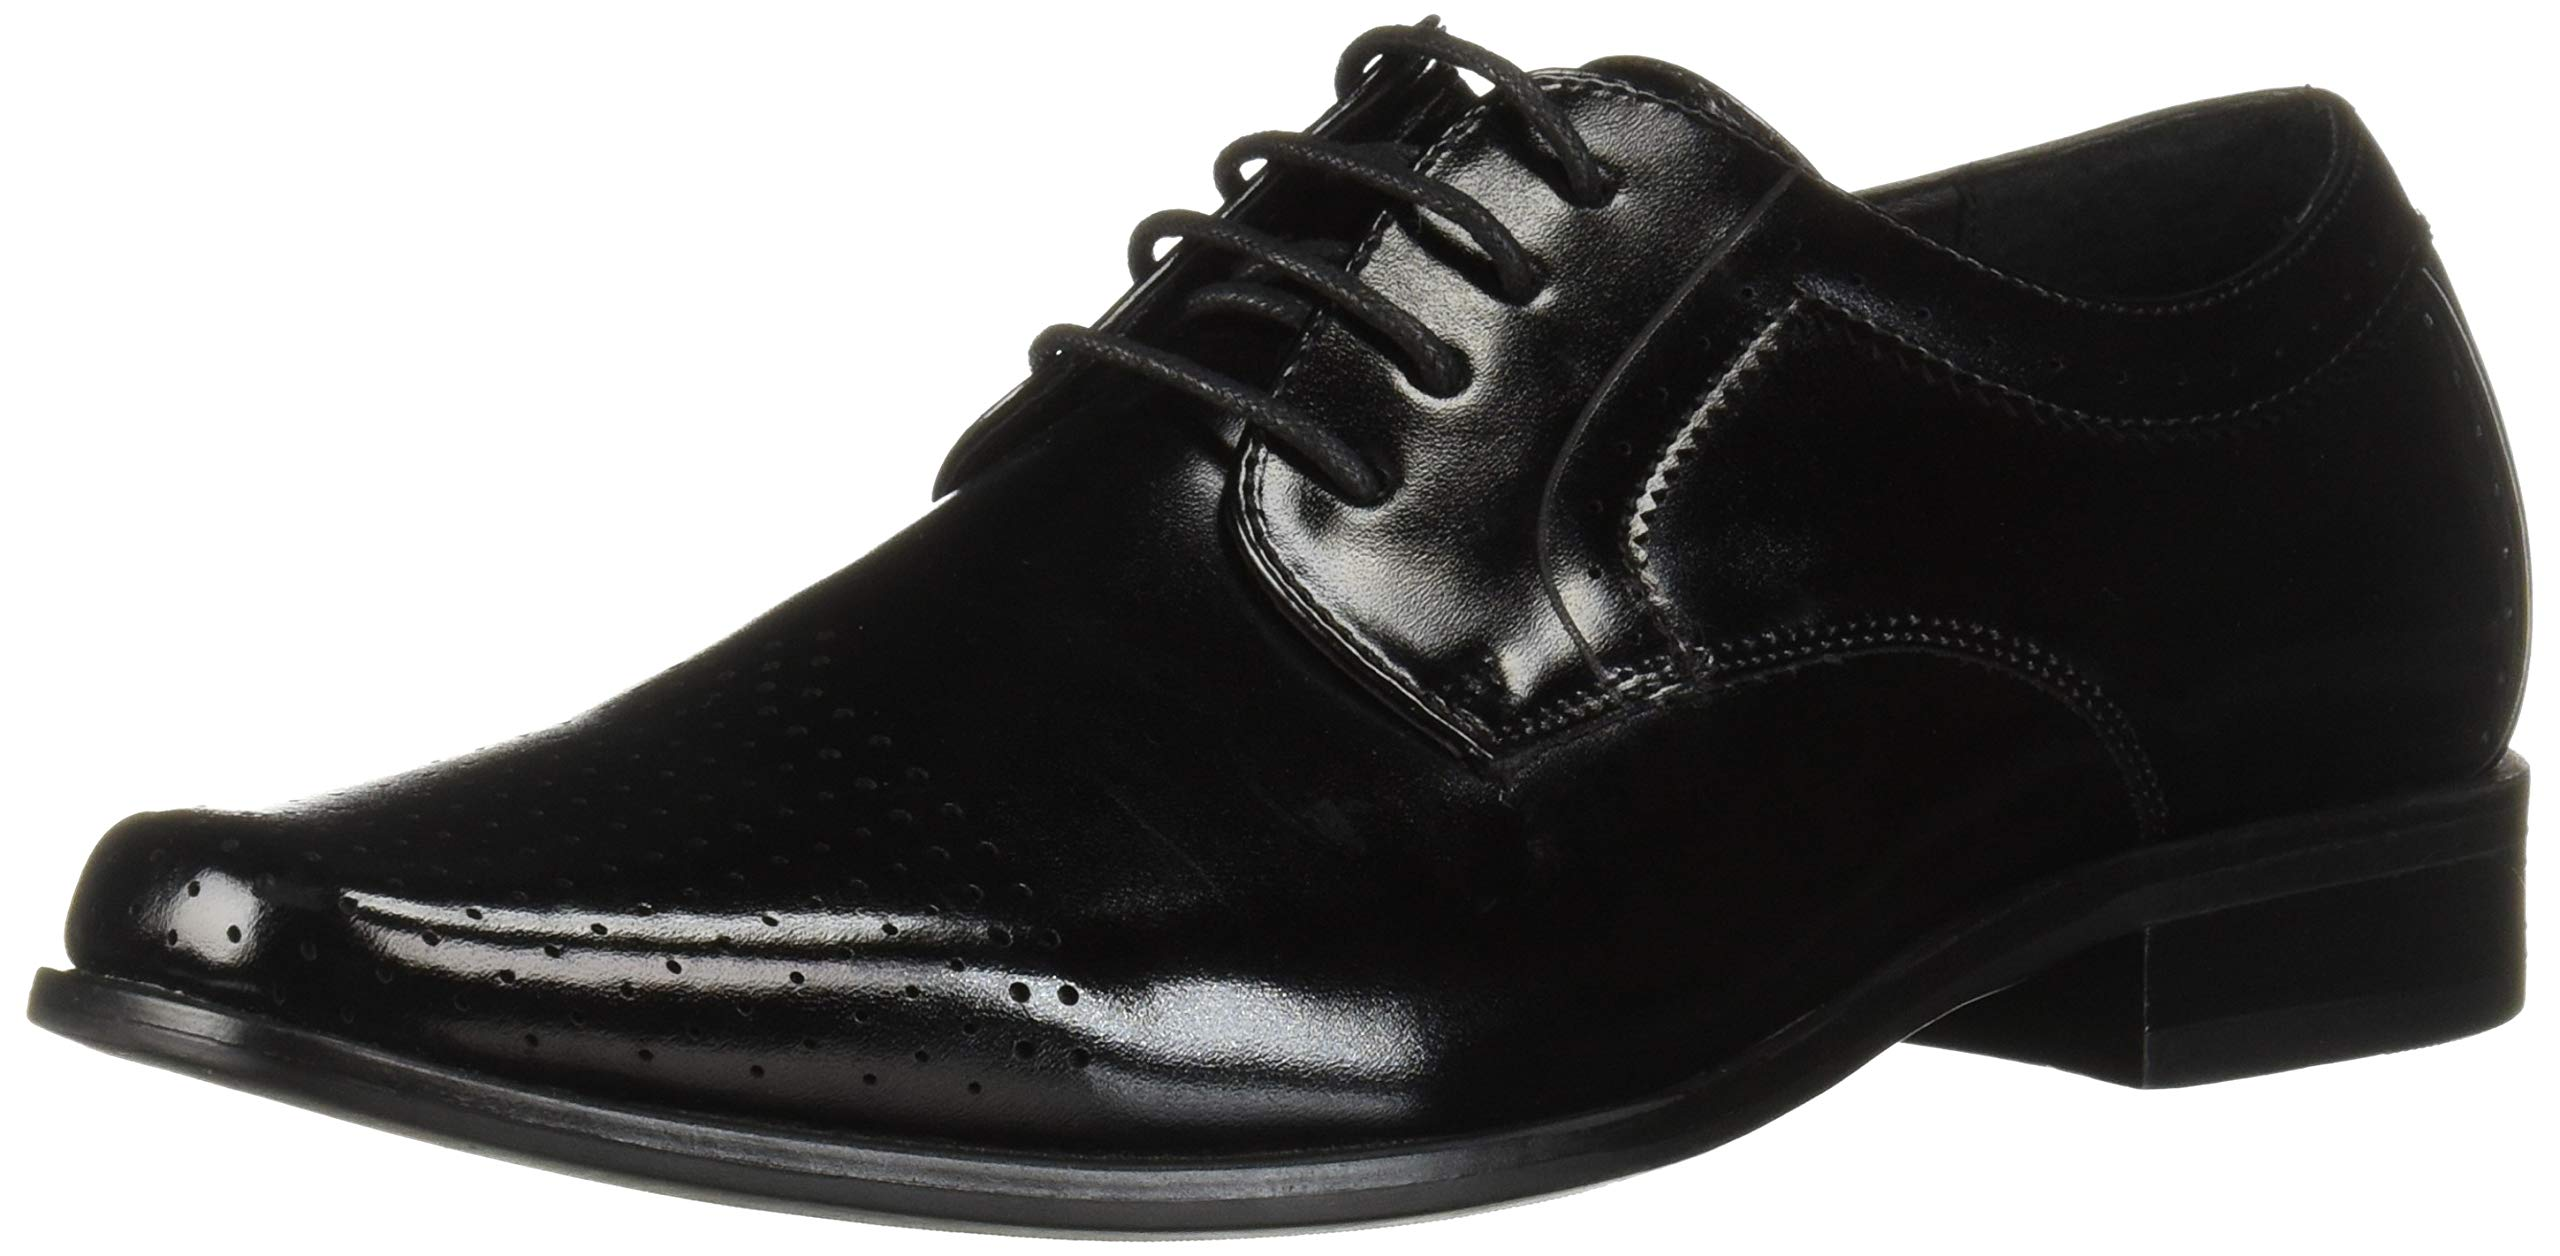 STACY ADAMS Unisex Sanborn Perfed Cap Toe Lace-Up Oxford, Black 4.5 M US Big Kid